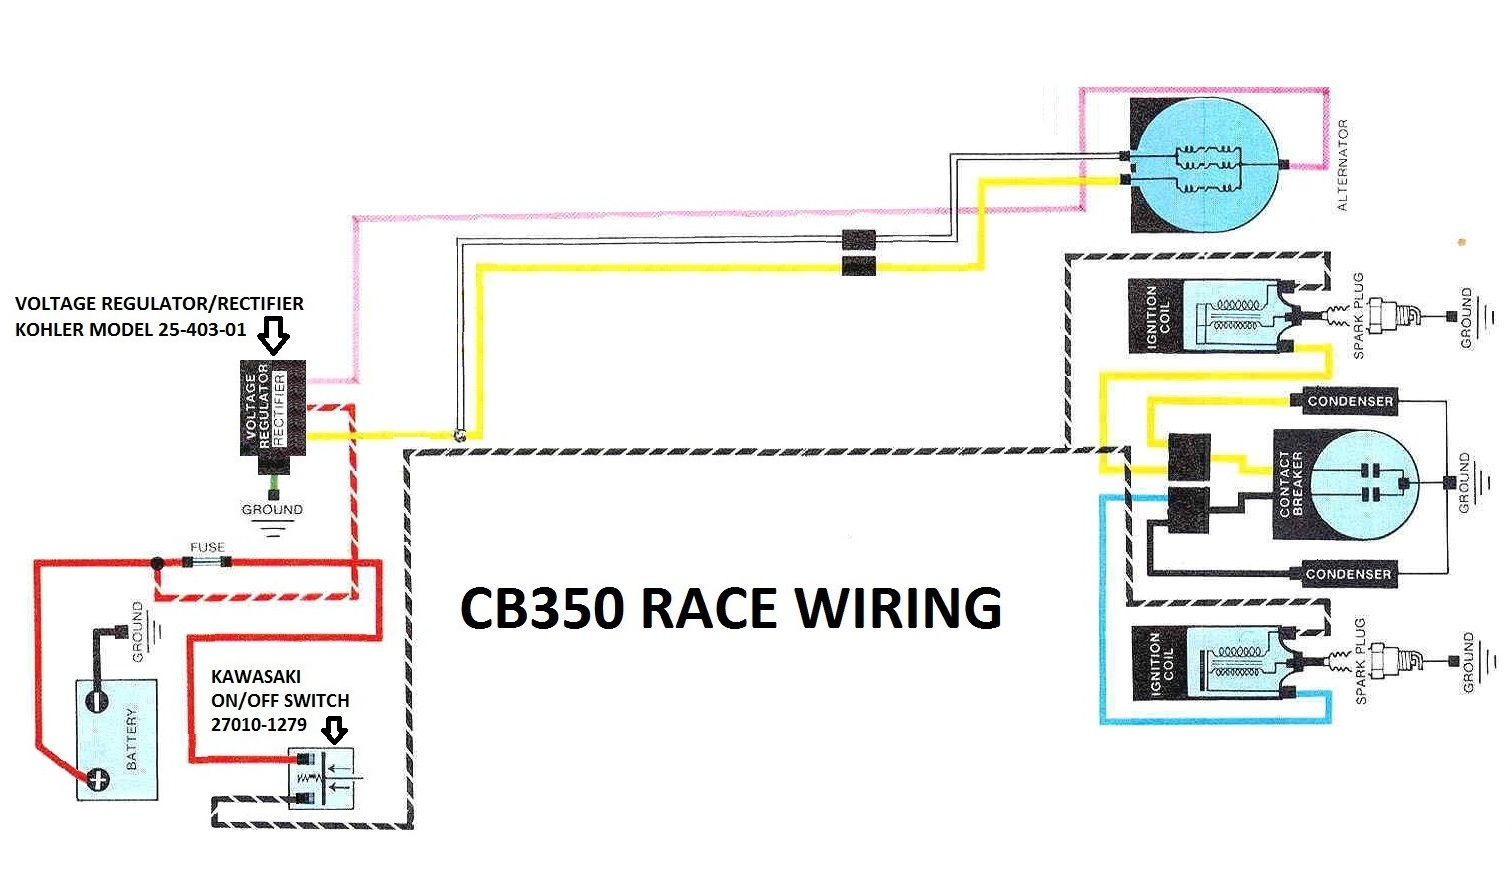 Cb 350 Wiring Diagram Opinions About Honda Motorcycle Cb350 Race A Question Voltage Regulator Rh Hondatwins Net Antenna